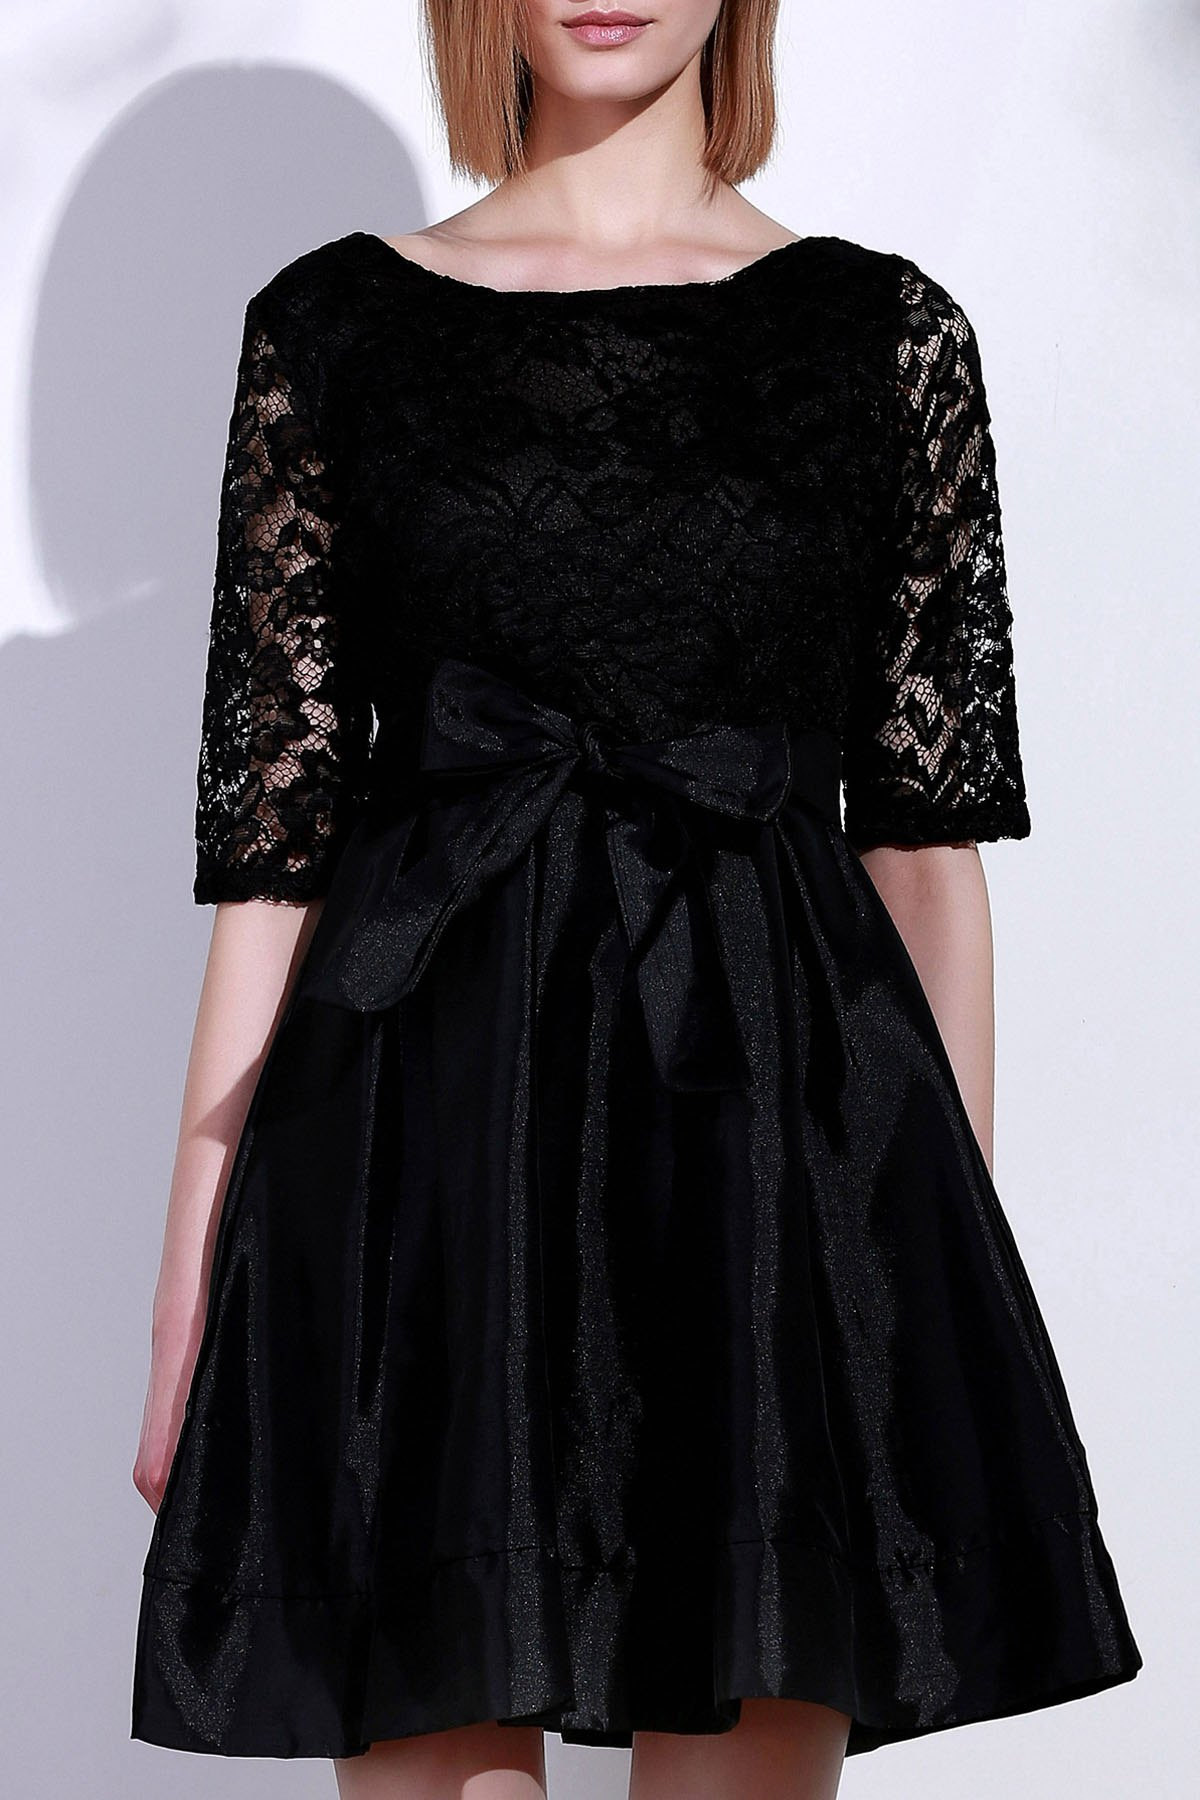 Chic Elegant Round Neck Half Sleeve Hollow Out Bowknot Embellished Women's Dress